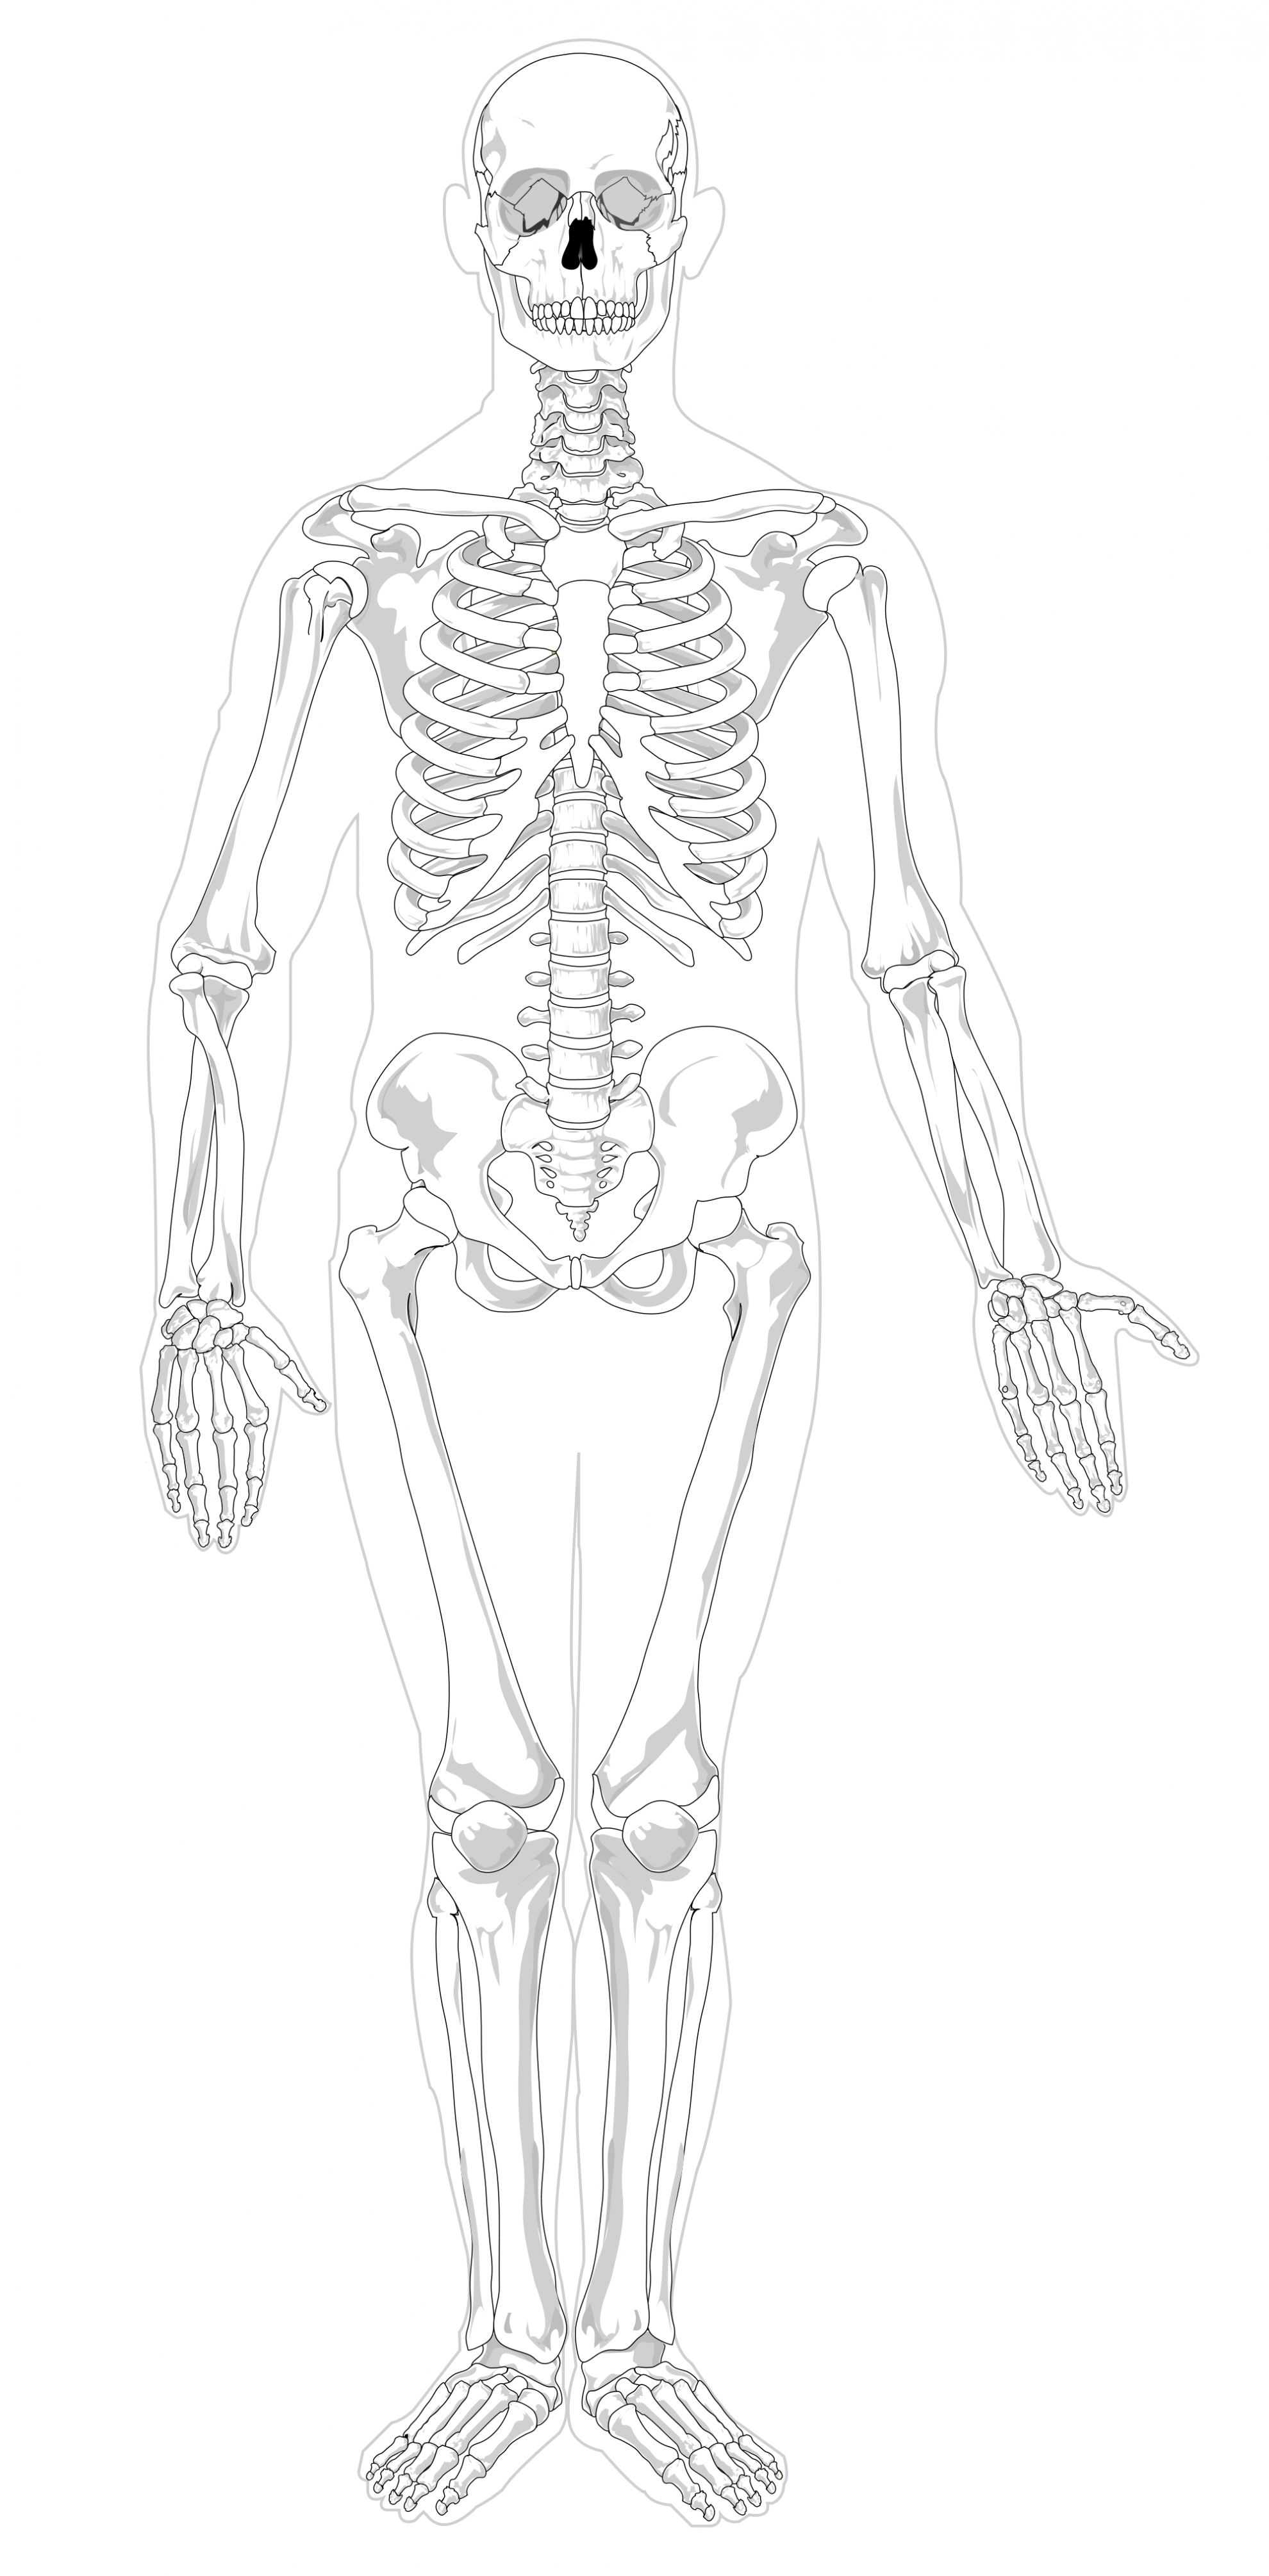 hight resolution of unlabeled diagram of the human skeleton unlabeled diagram of the human skeleton bones of the